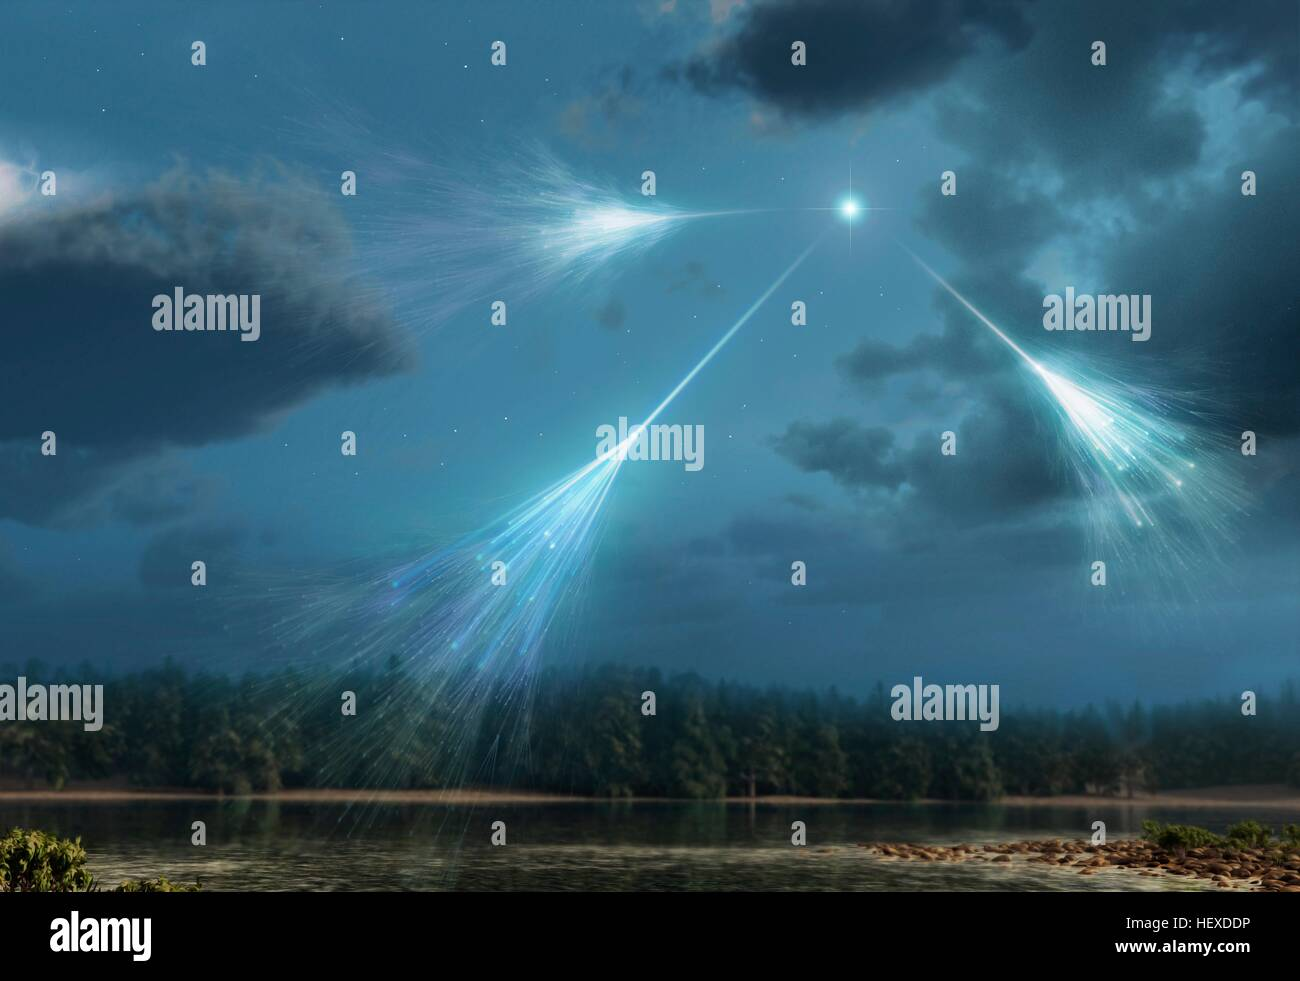 Cosmic rays.Artwork of high-energy particles radiation from star in deep space (cosmic rays) impacting molecules - Stock Image